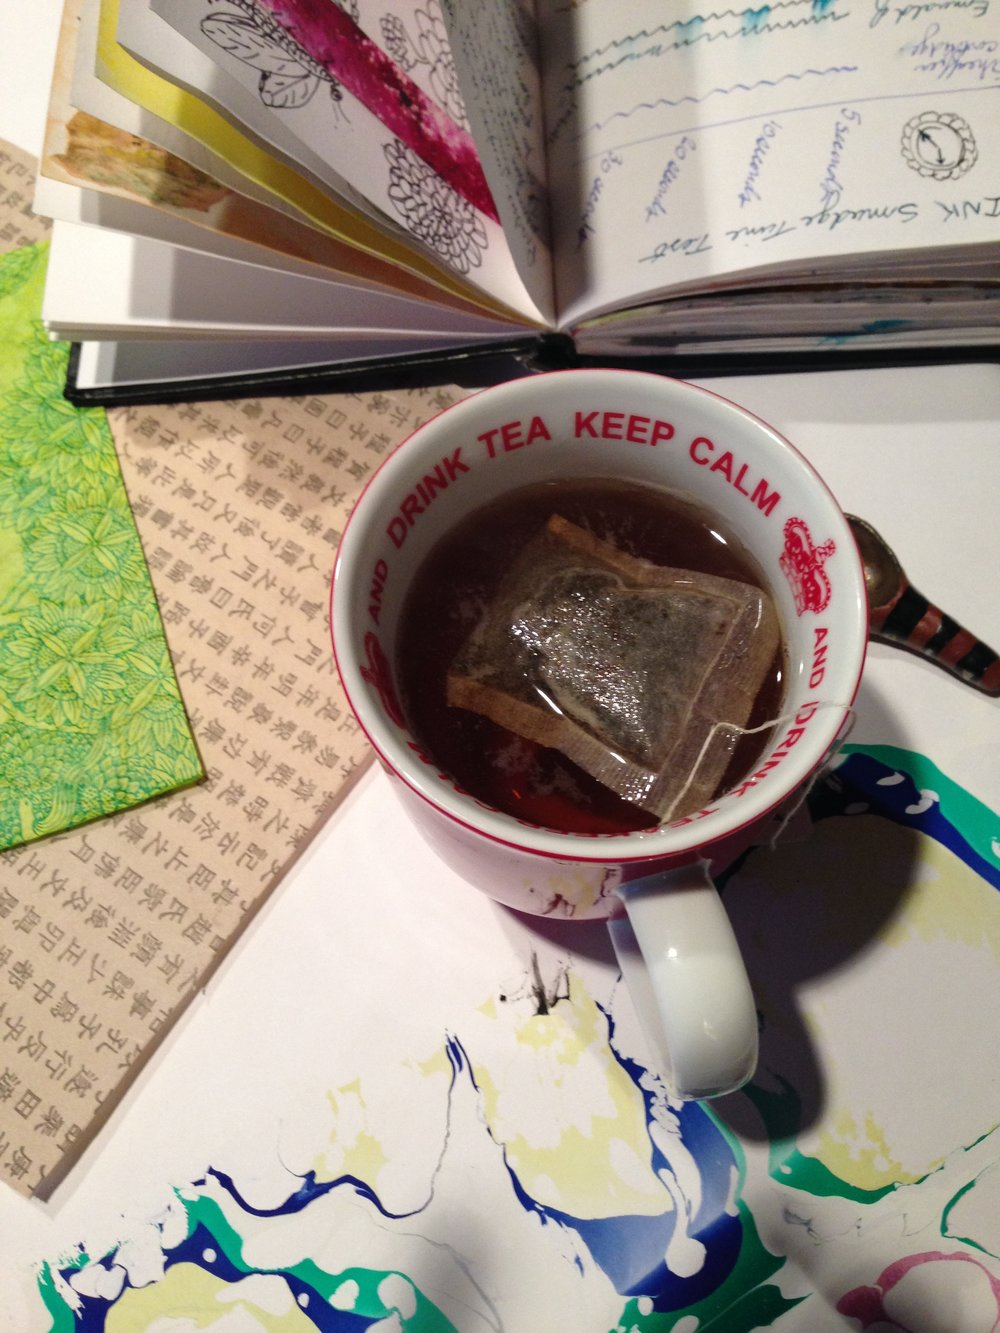 When my art practice is stalled, going back to basics: sitting with tea, working small in my journal with familiar materials gets me back to my balance spot.